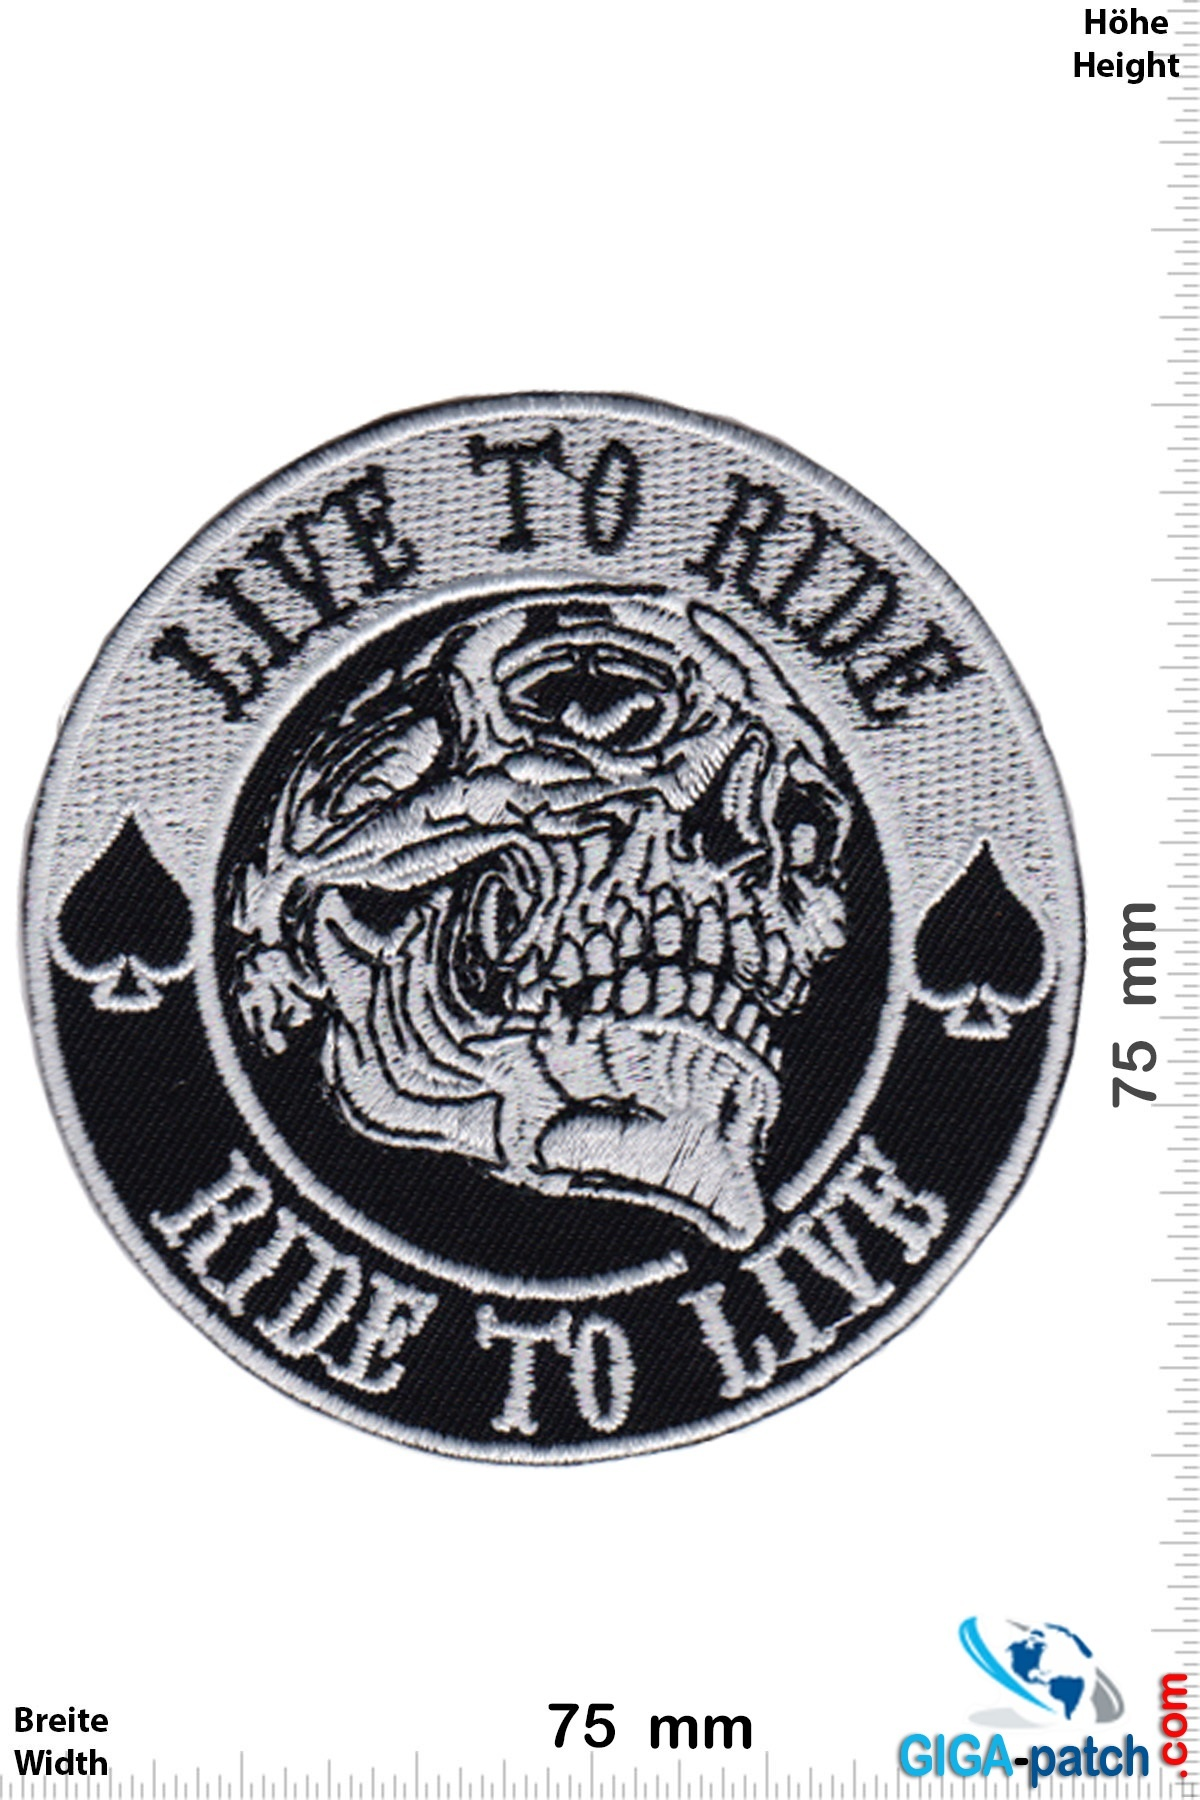 Cafe Racer Cafe Racers - Live to Ride - Ride to Live